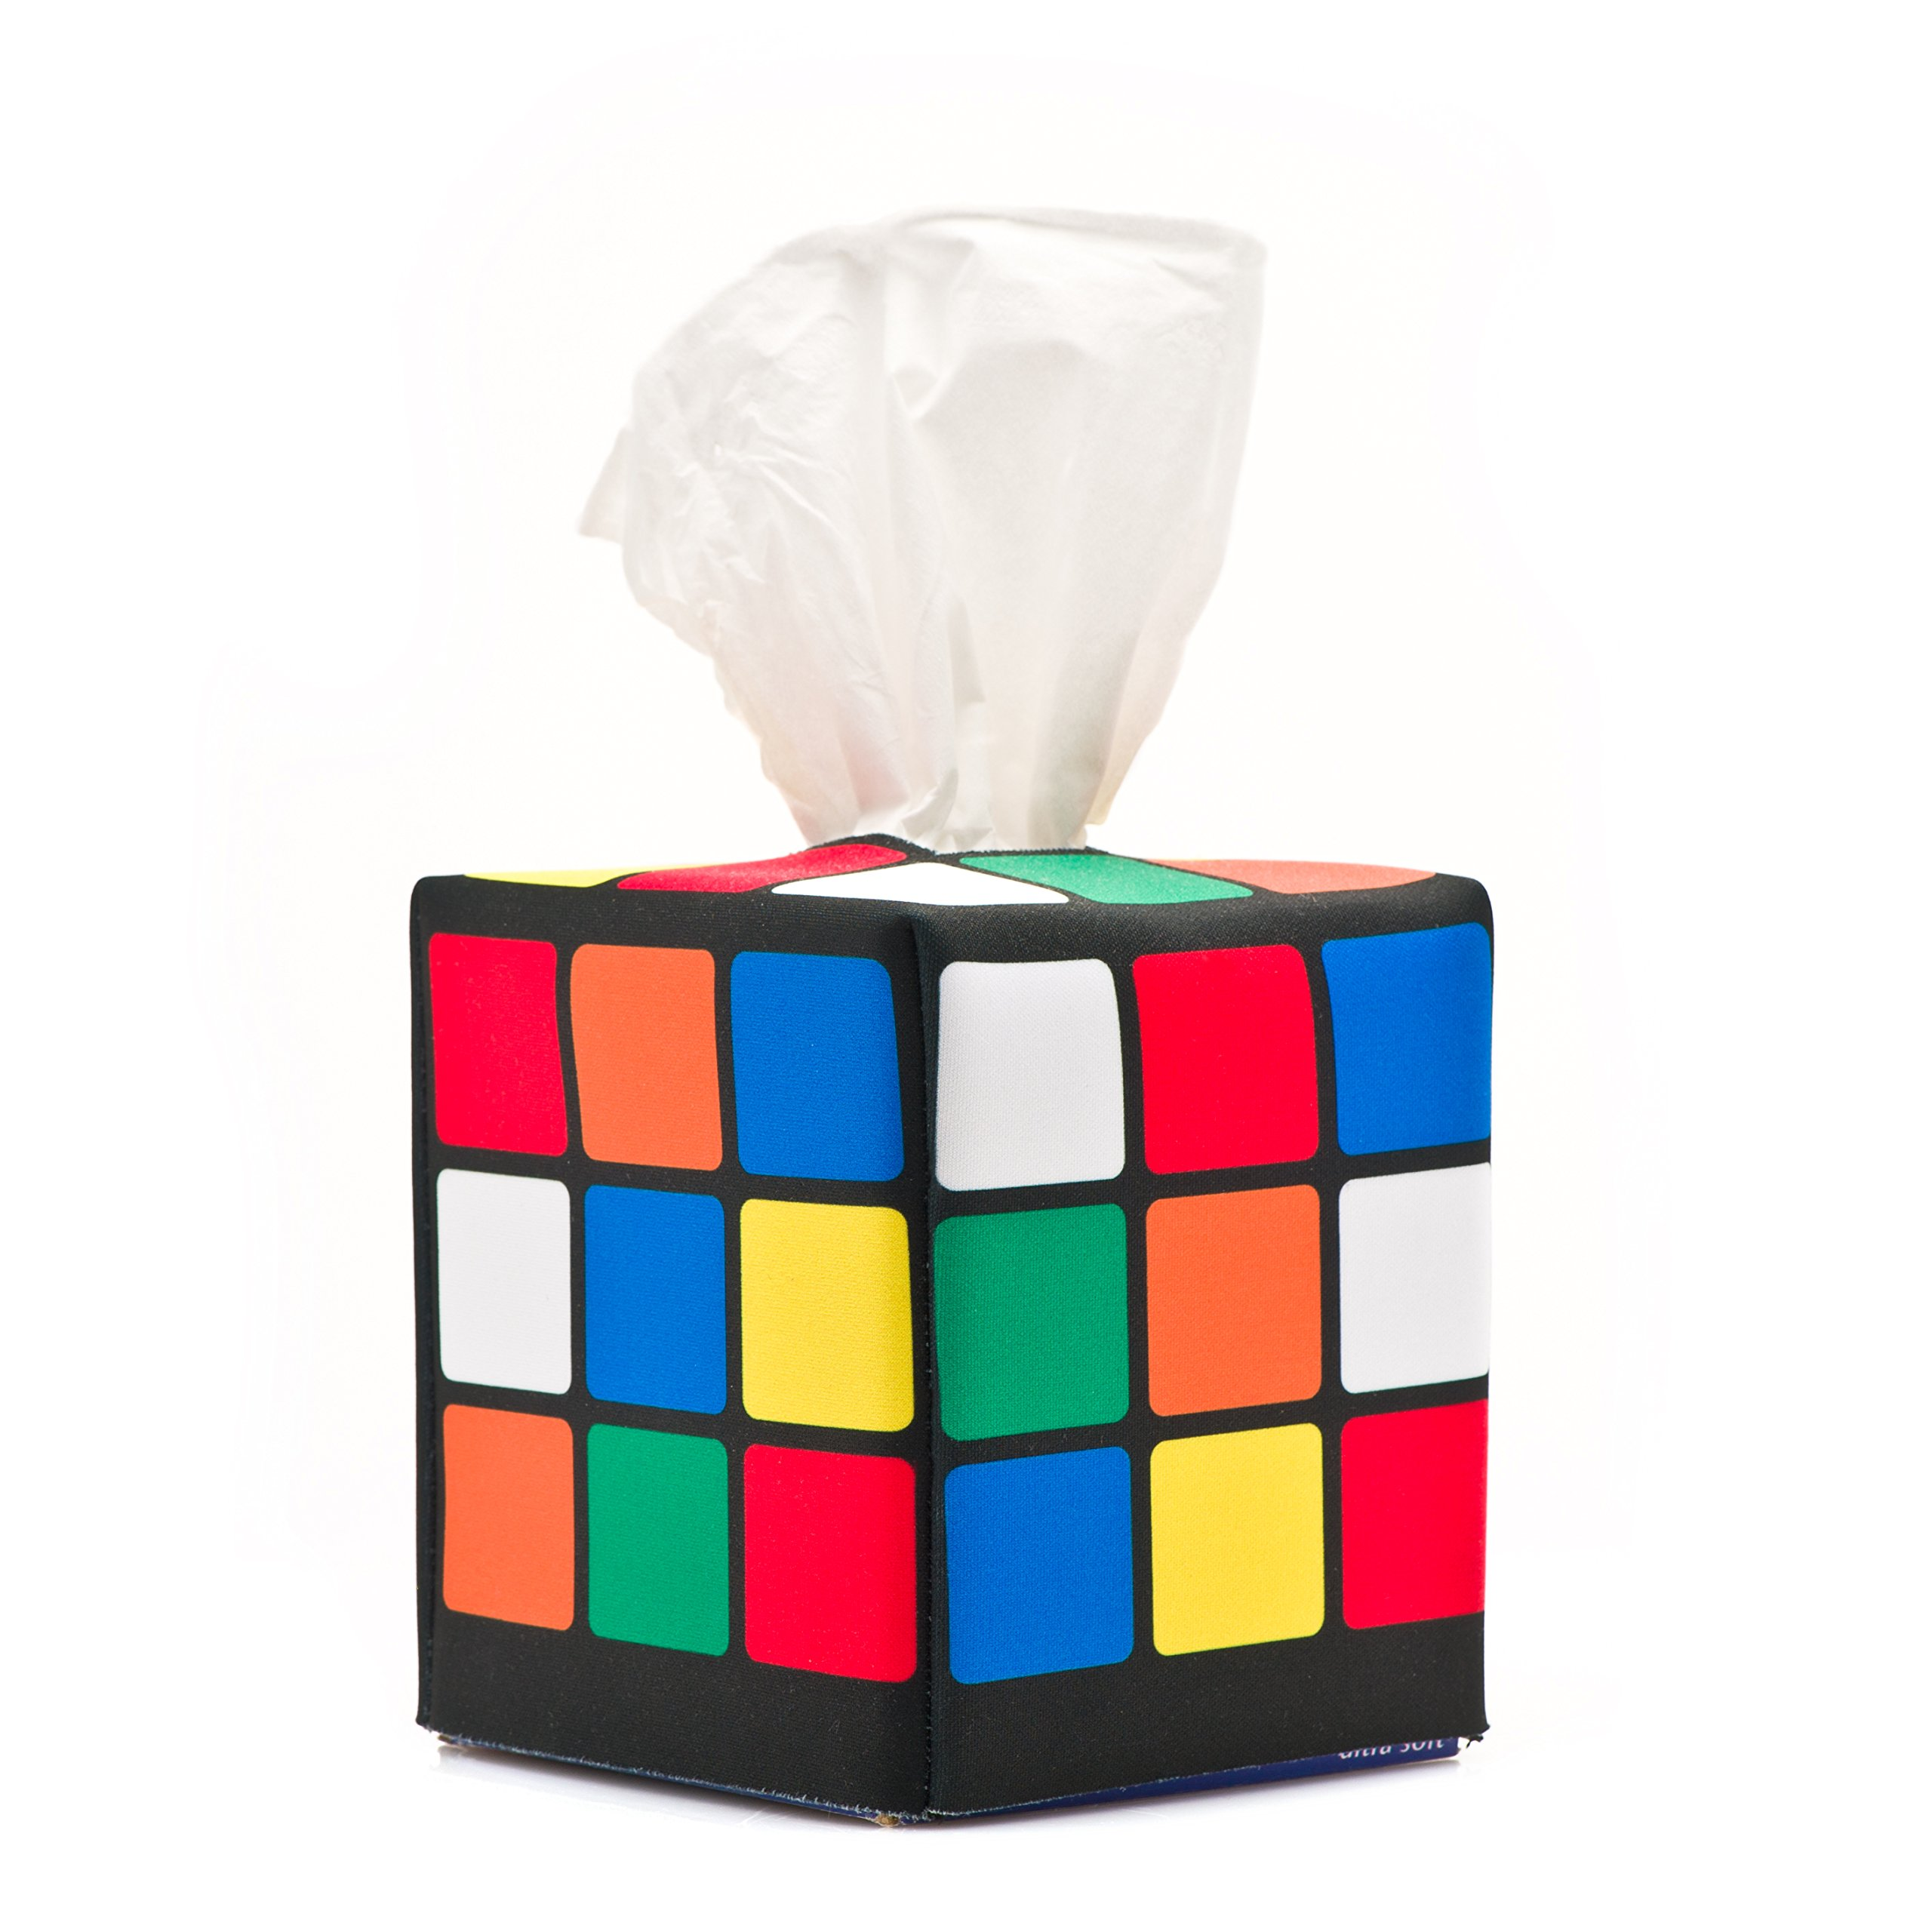 Big Bang Theory Gifts- CoolTVProps Rubiks Cube Box- Cool Apartment Accessories Rubiks Cube Box- Nerd Office Decor by Cool TV Props